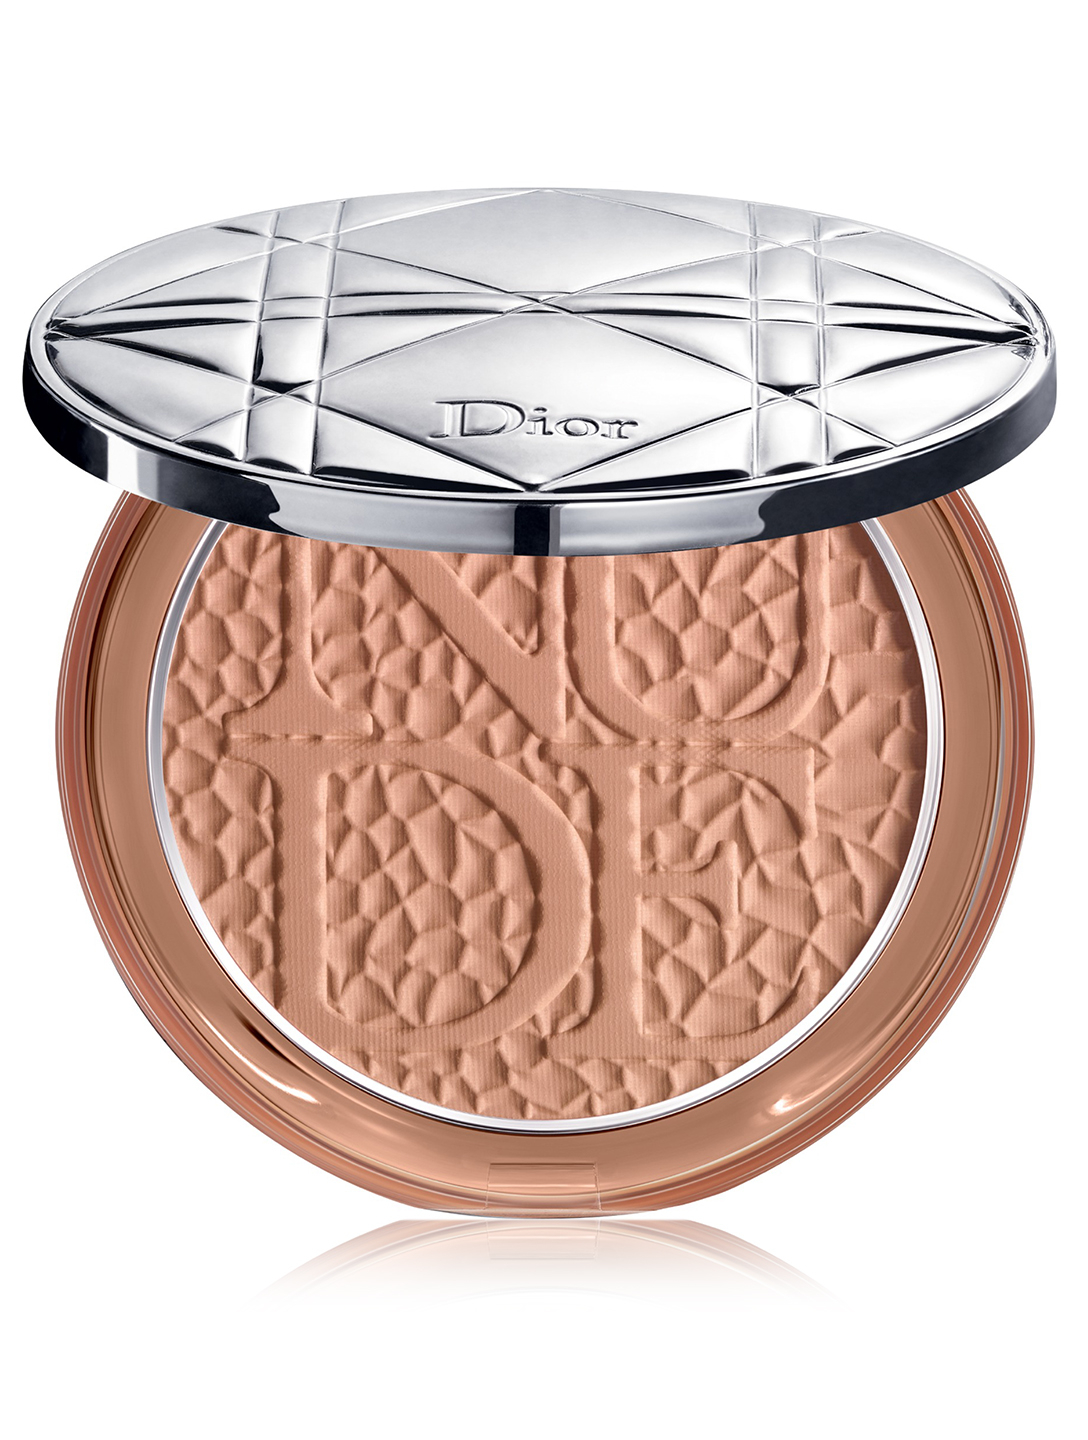 DIOR Diorskin Mineral Nude Bronze Healthy Glow Bronzing Powder - Wild Earth Limited Edition Beauty Bronze